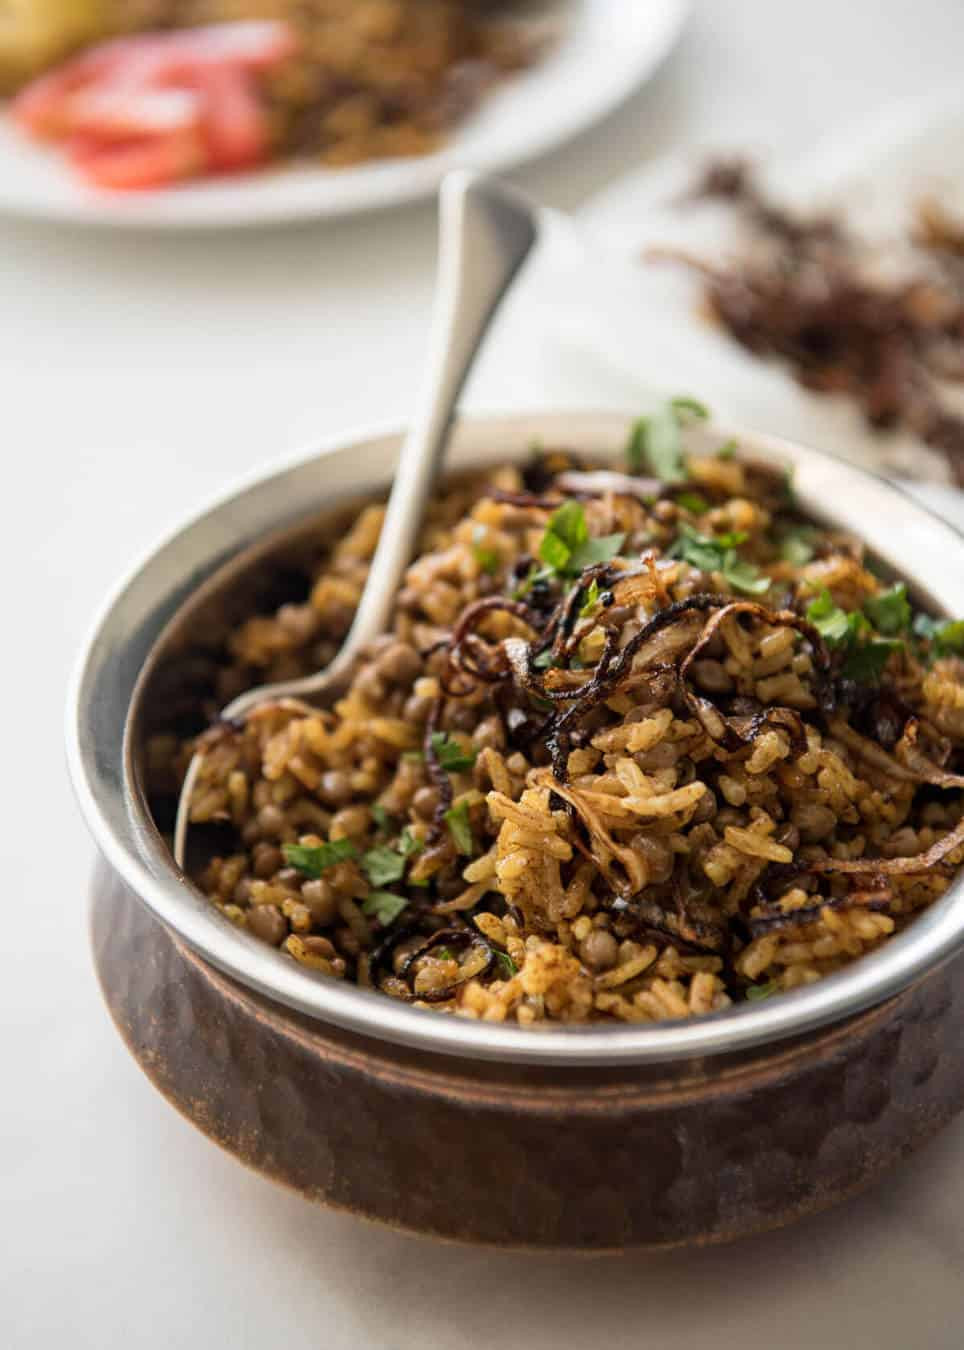 Middle Eastern Rice Recipes  Middle Eastern Spiced Lentil and Rice Mejadra